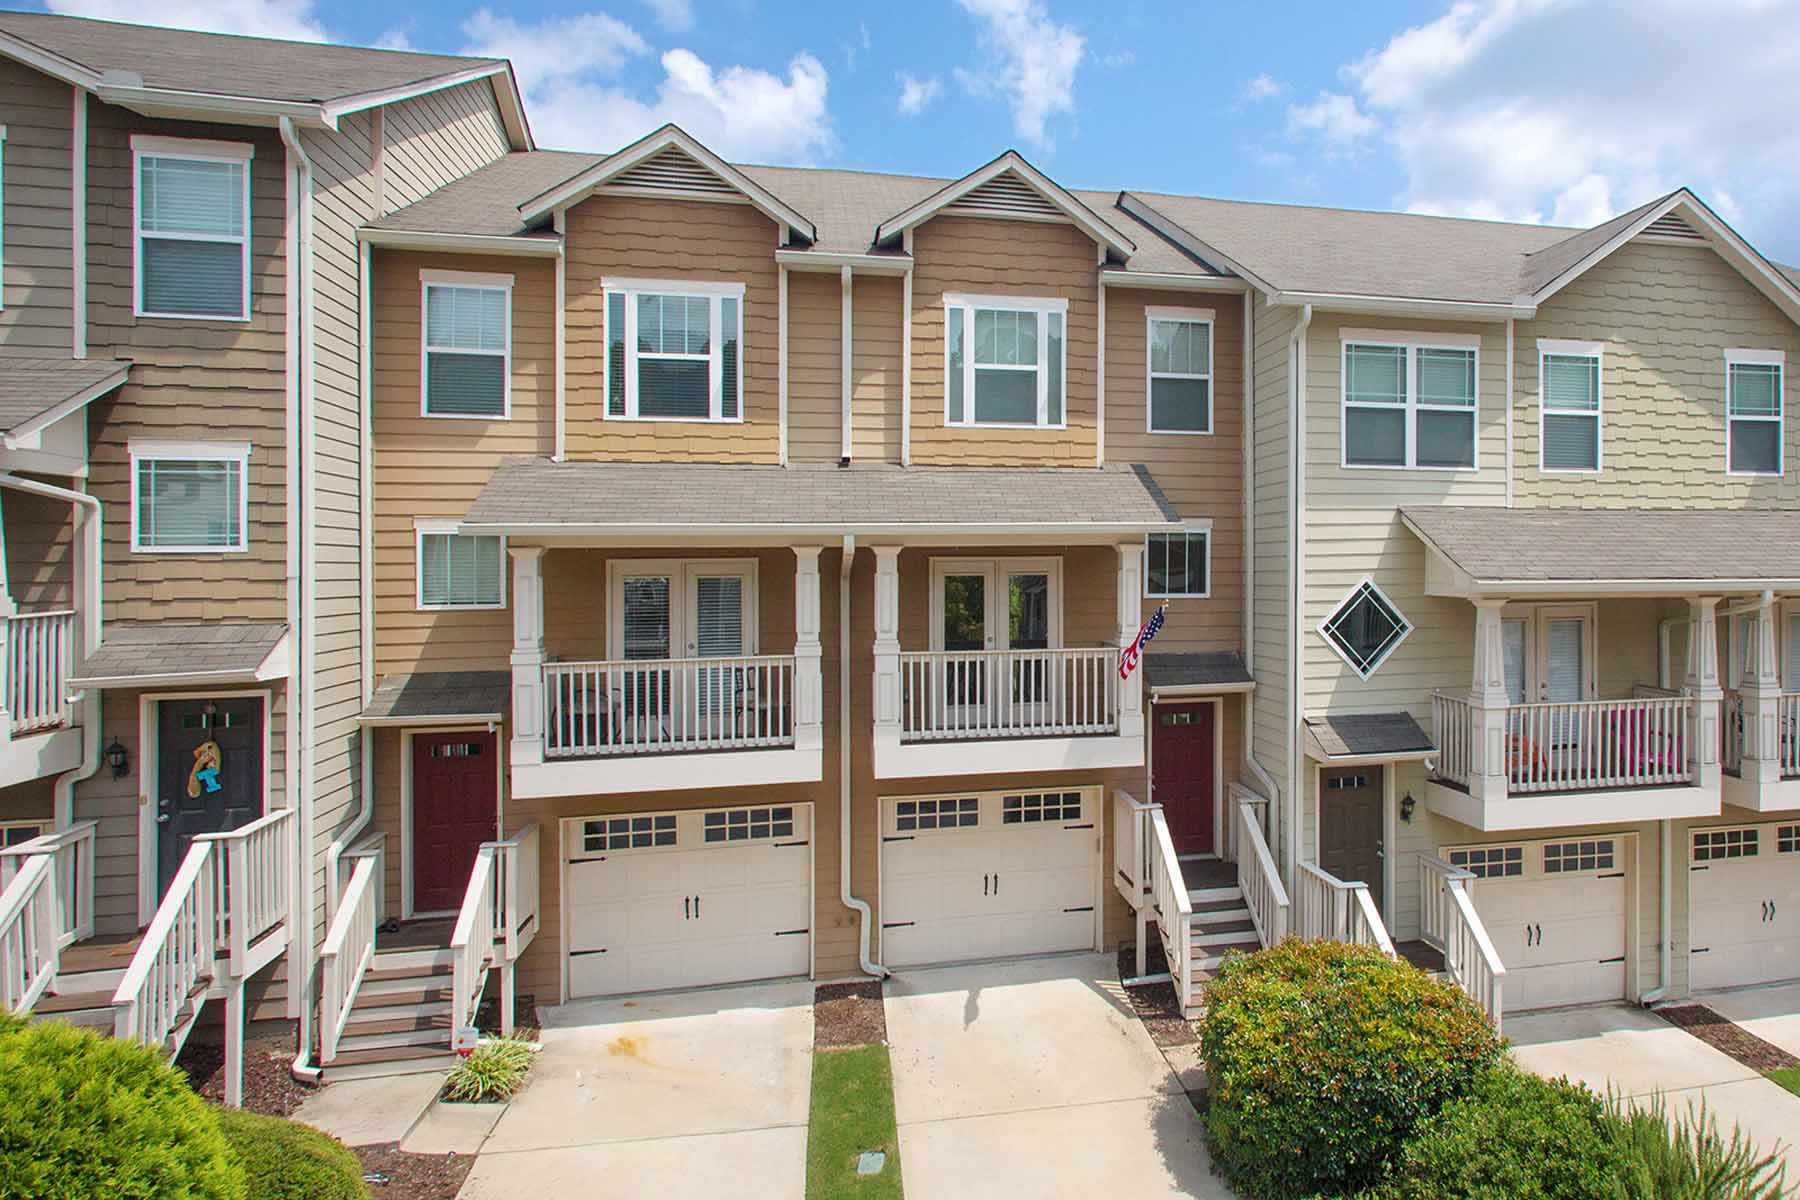 Townhouse for Sale at Beautifully maintained three bedroom, three and one half bath townhome! 1353 Liberty Parkway Atlanta, Georgia 30318 United States